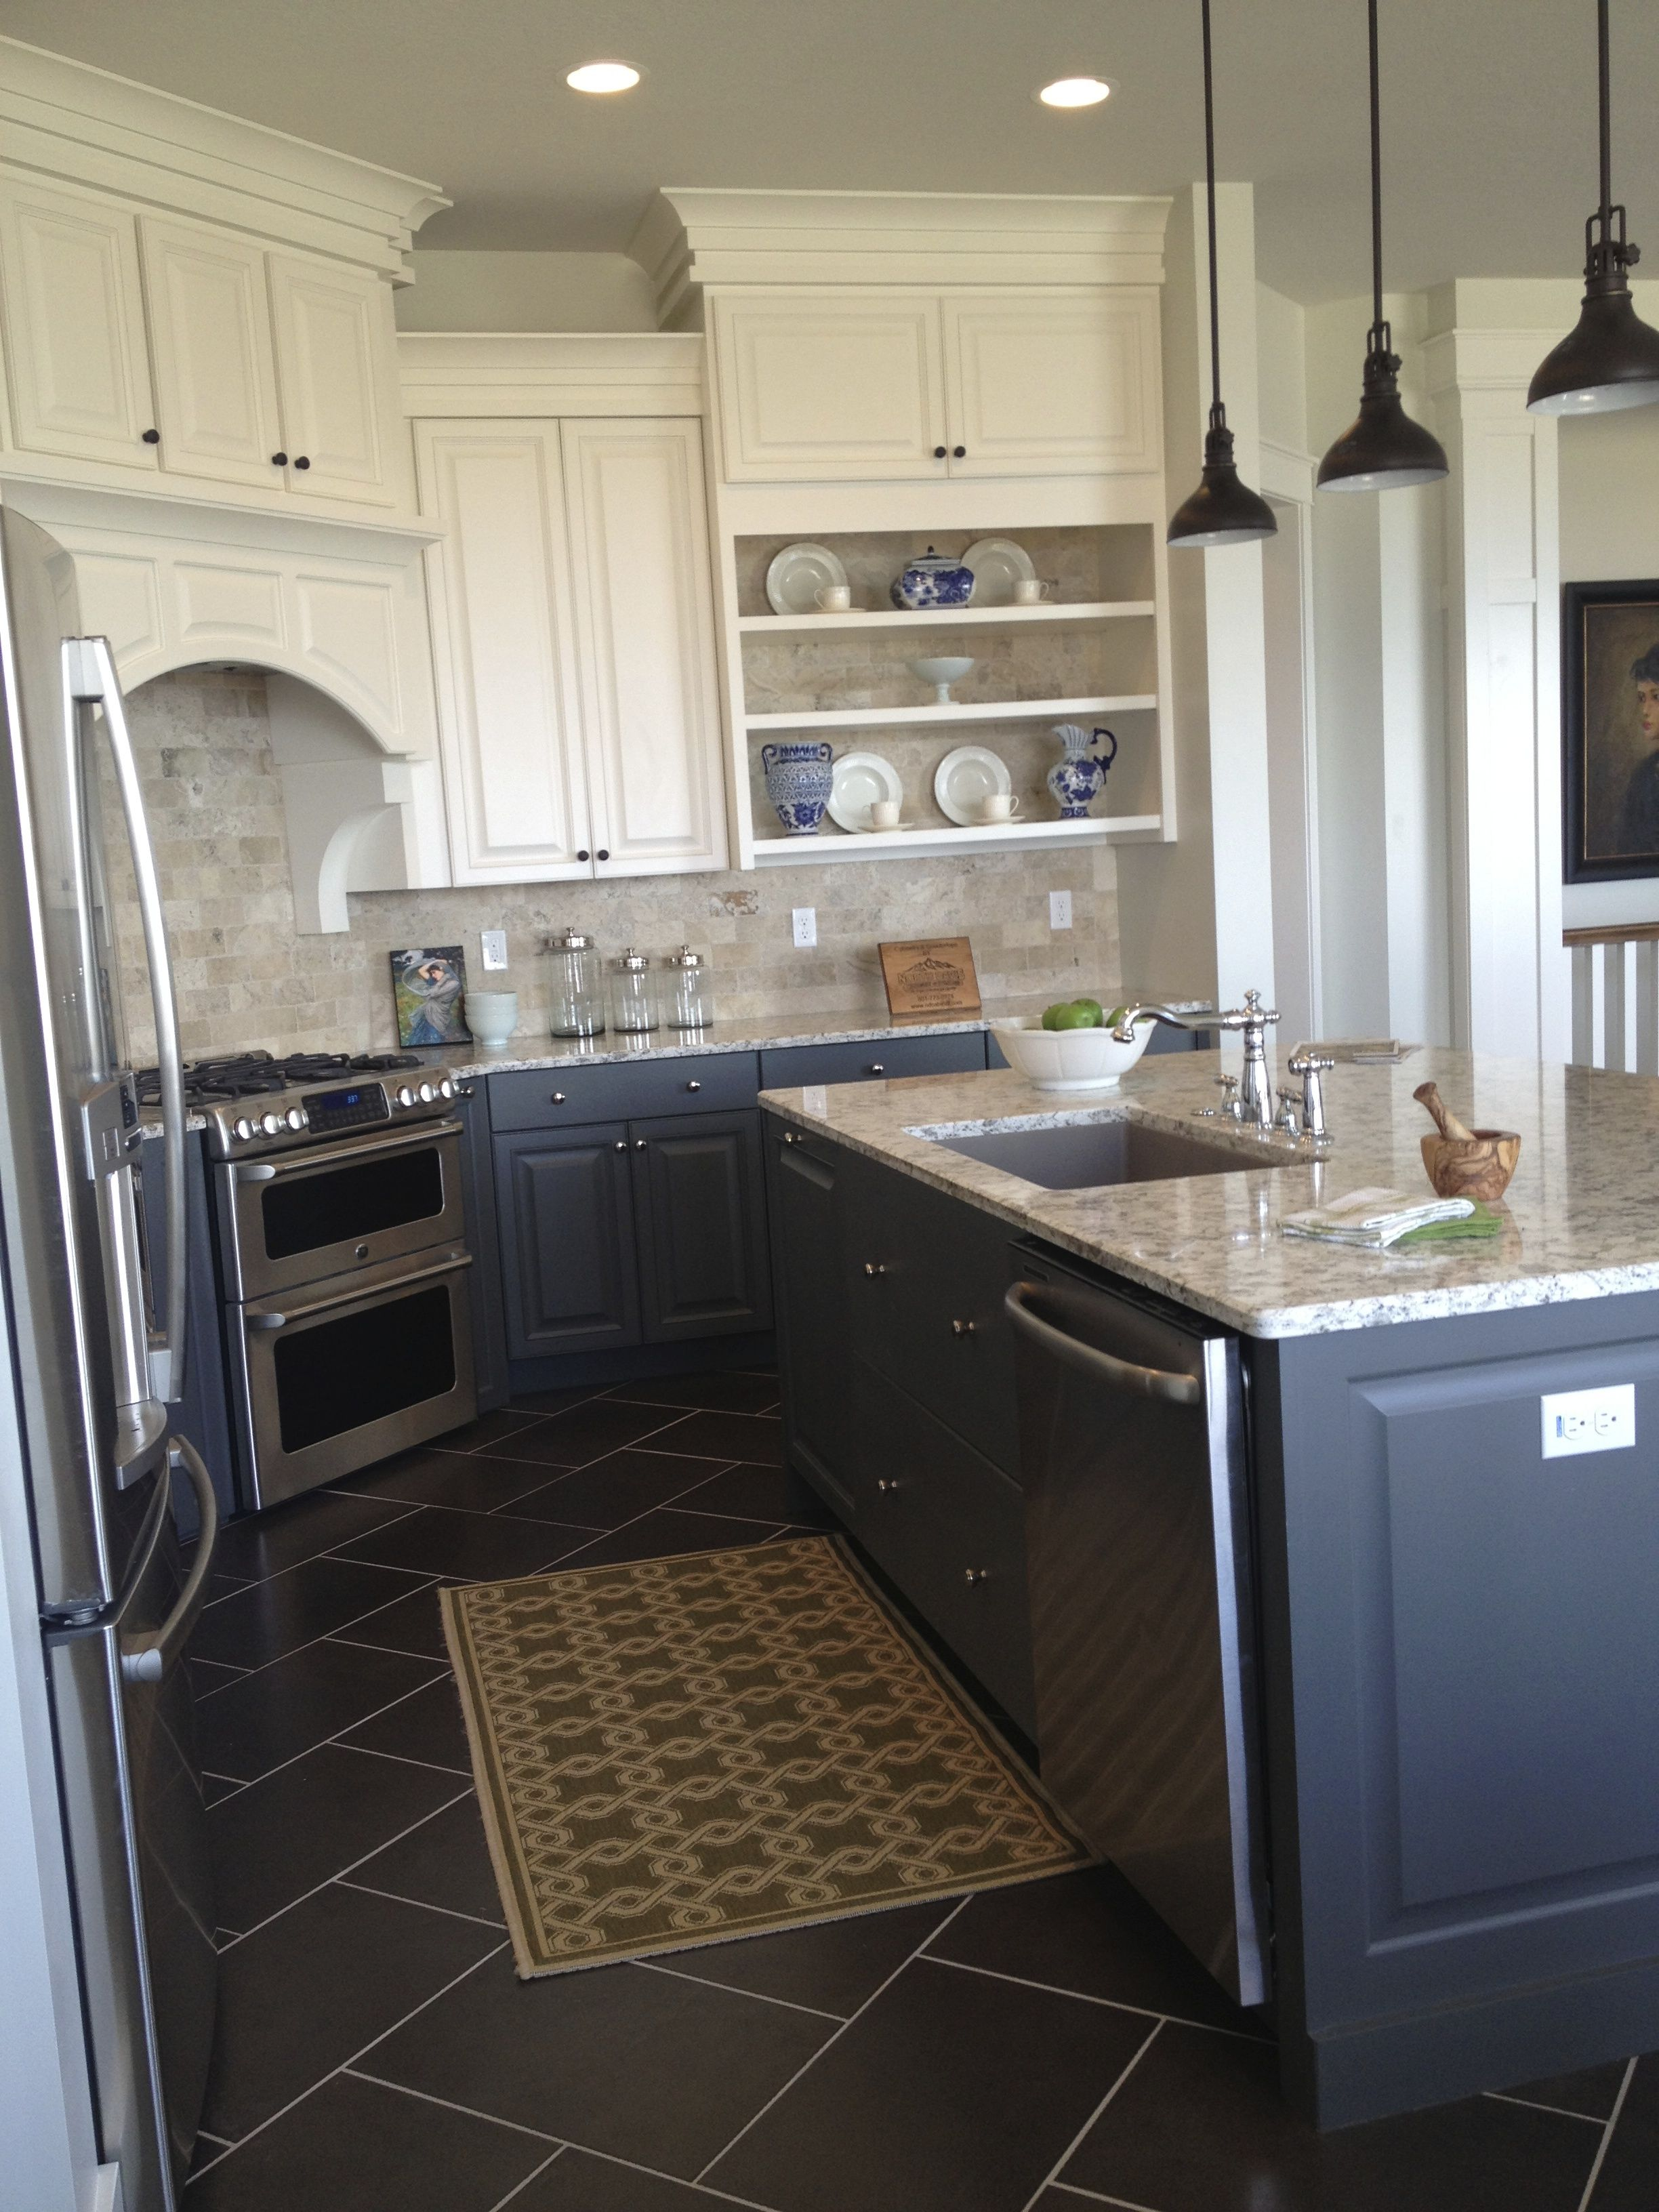 Pin By Tonya Olsen On Eat Kitchen And Dining Room Kitchen Flooring Kitchen Design Decor Kitchen Design